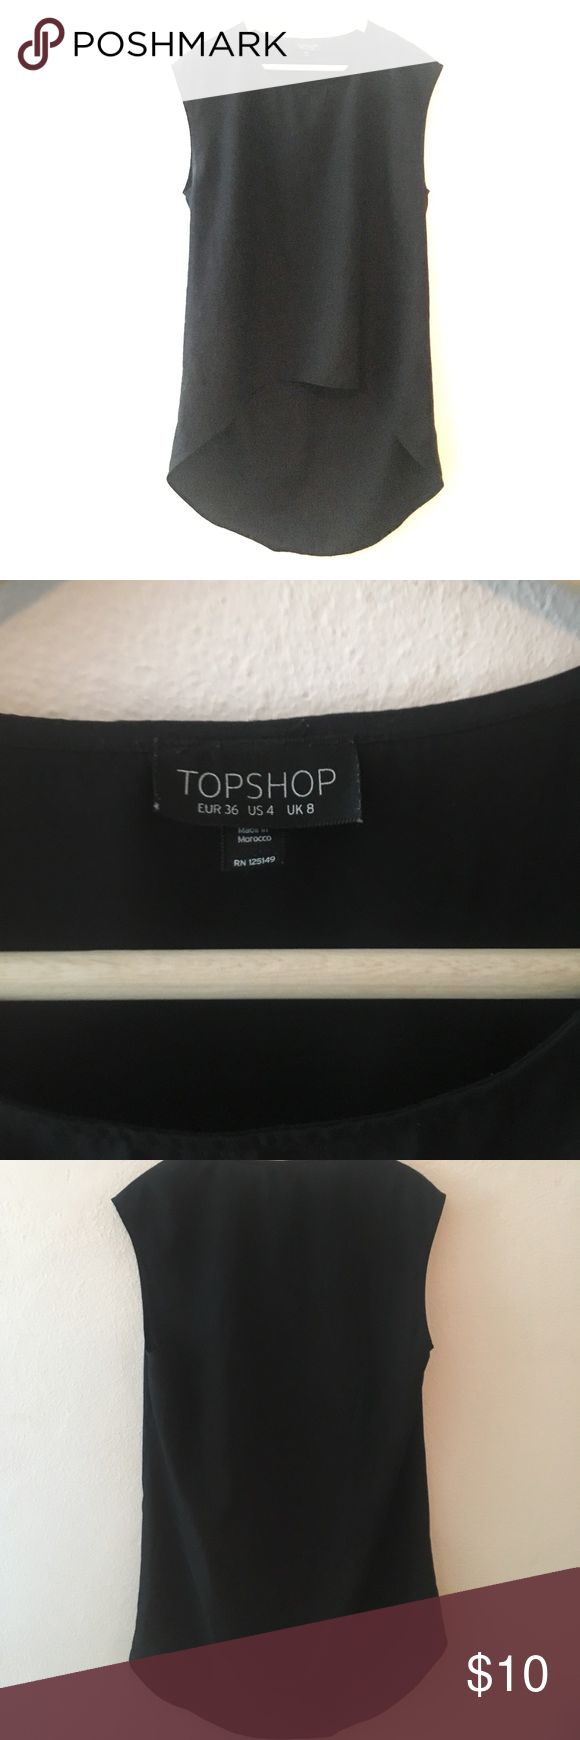 Topshop high low top Topshop top- higher in front and lower in the back. Made of a poly blend 20 inches in the front and  35 inches in the back Topshop Tops